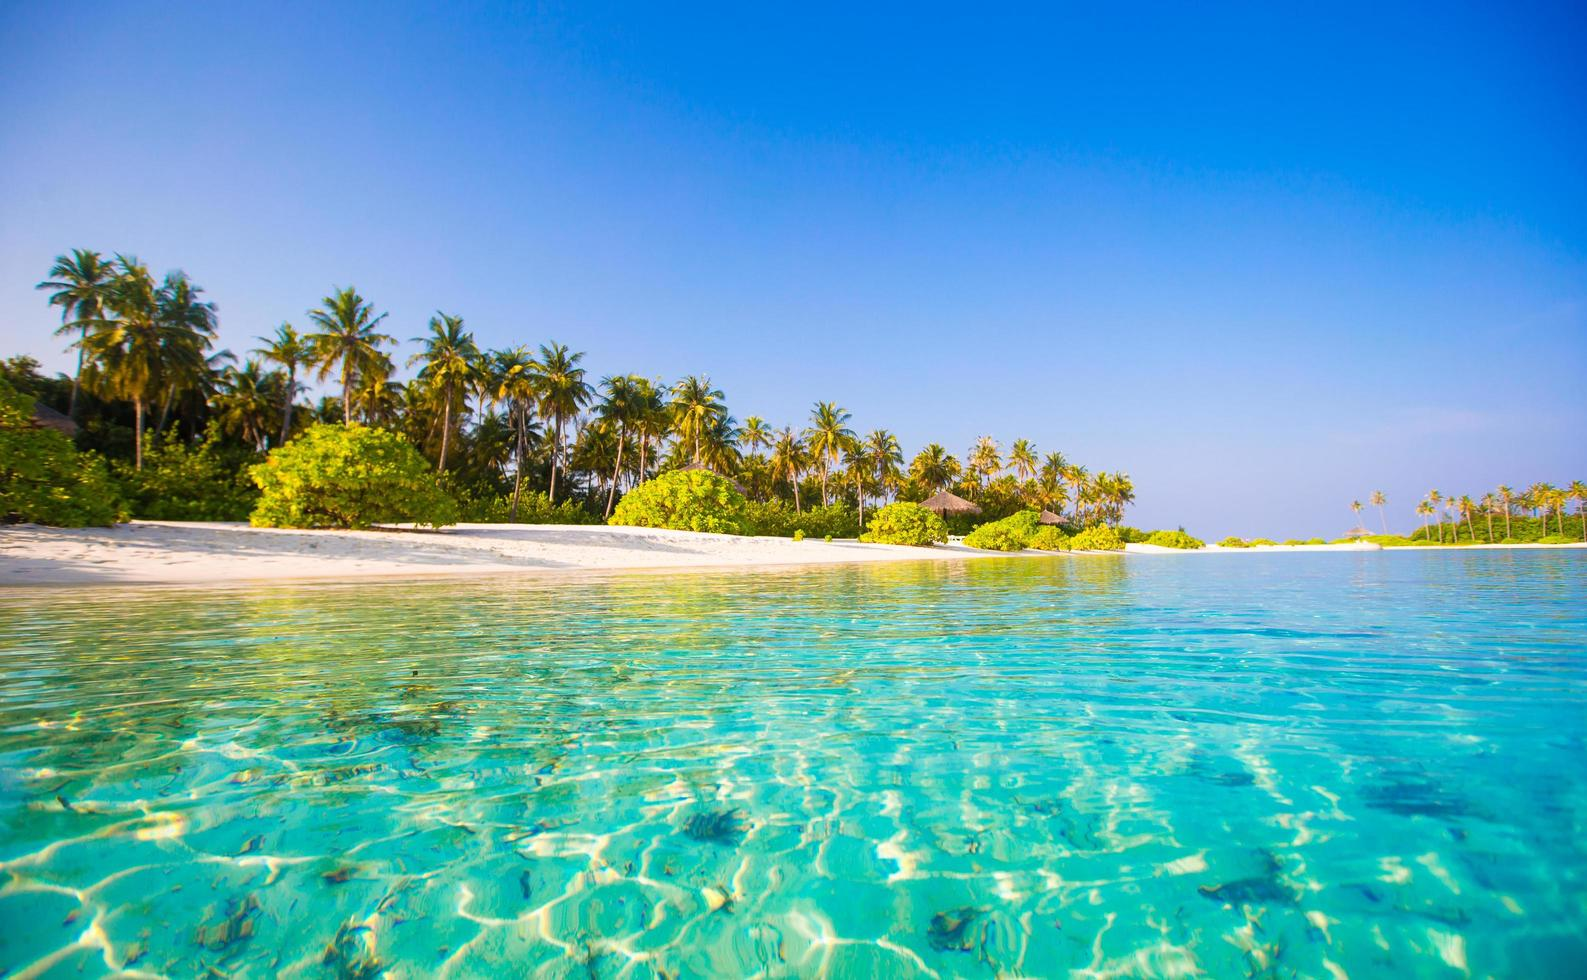 Beautiful blue water at a tropical beach photo